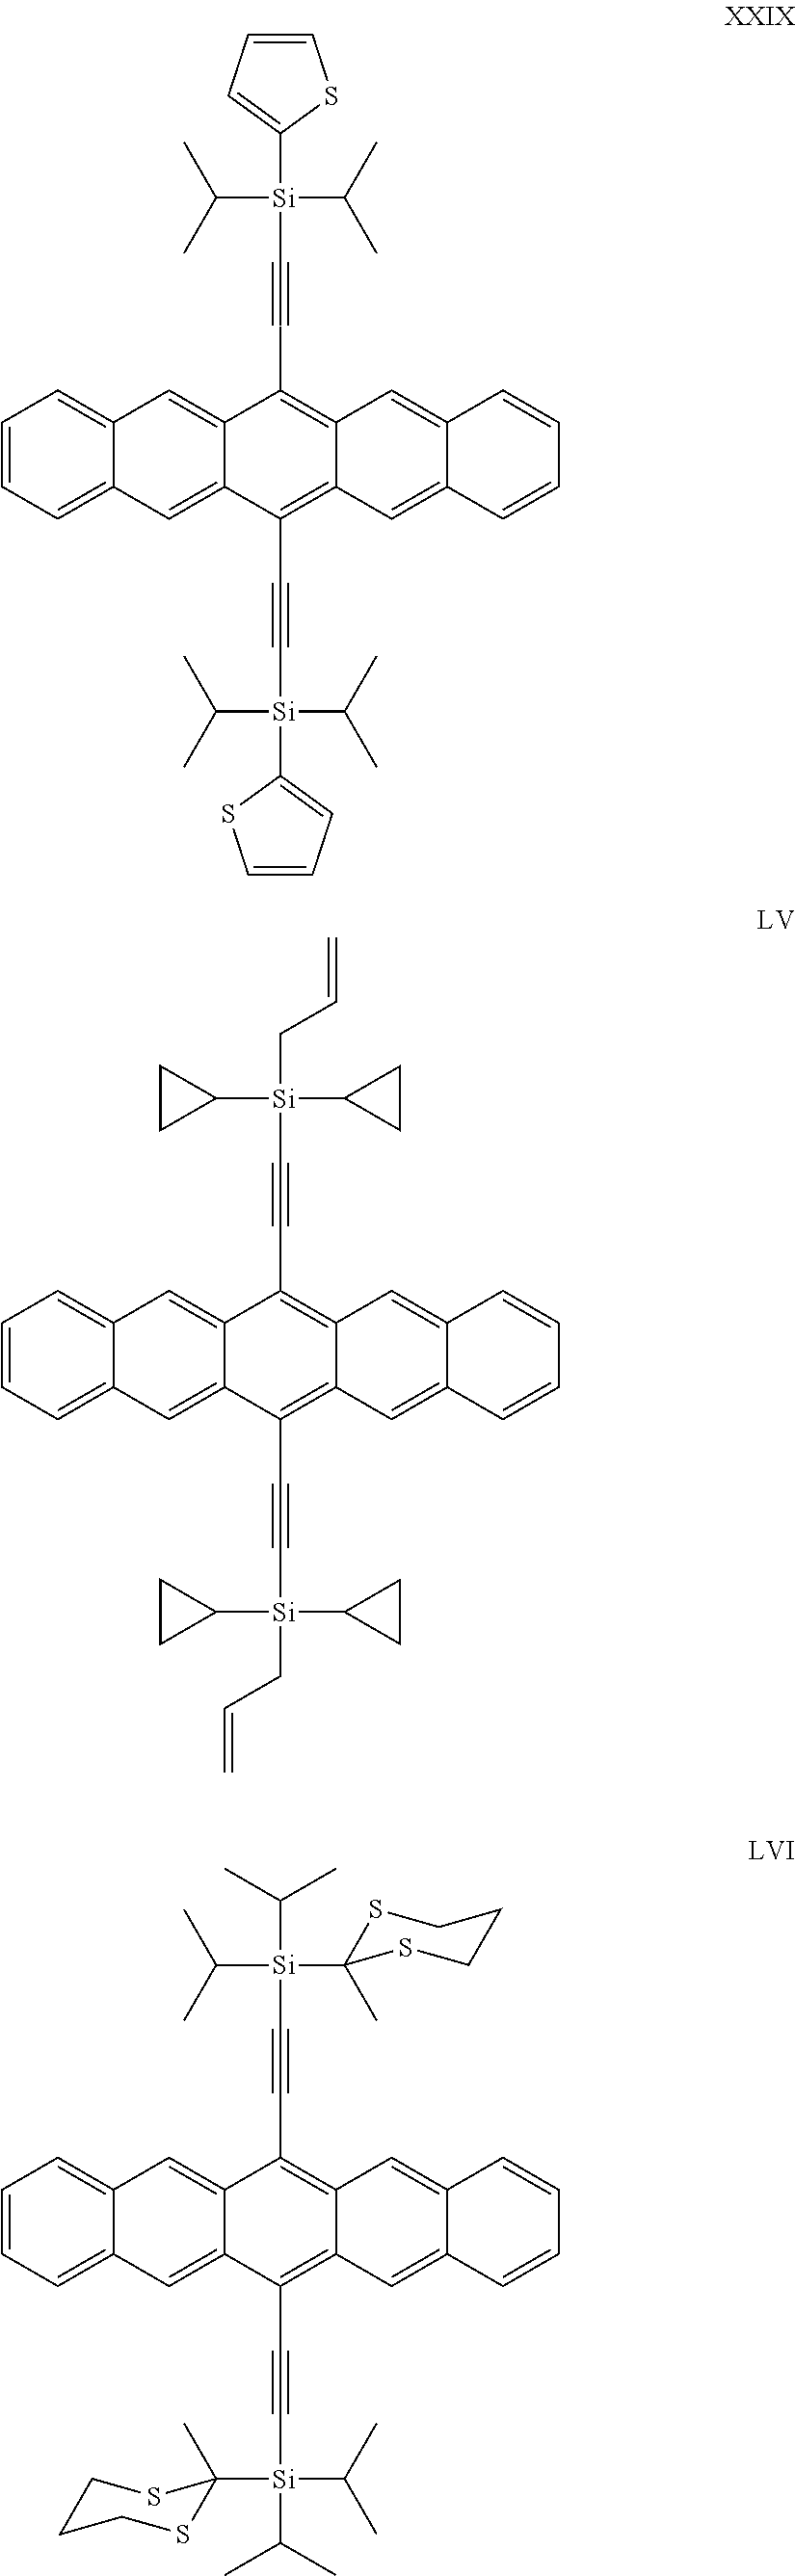 Us8956555b2 Silylethynyl Pentacene Compounds And Compositions 555 Timer Sigmatone Figure Us08956555 20150217 C00007